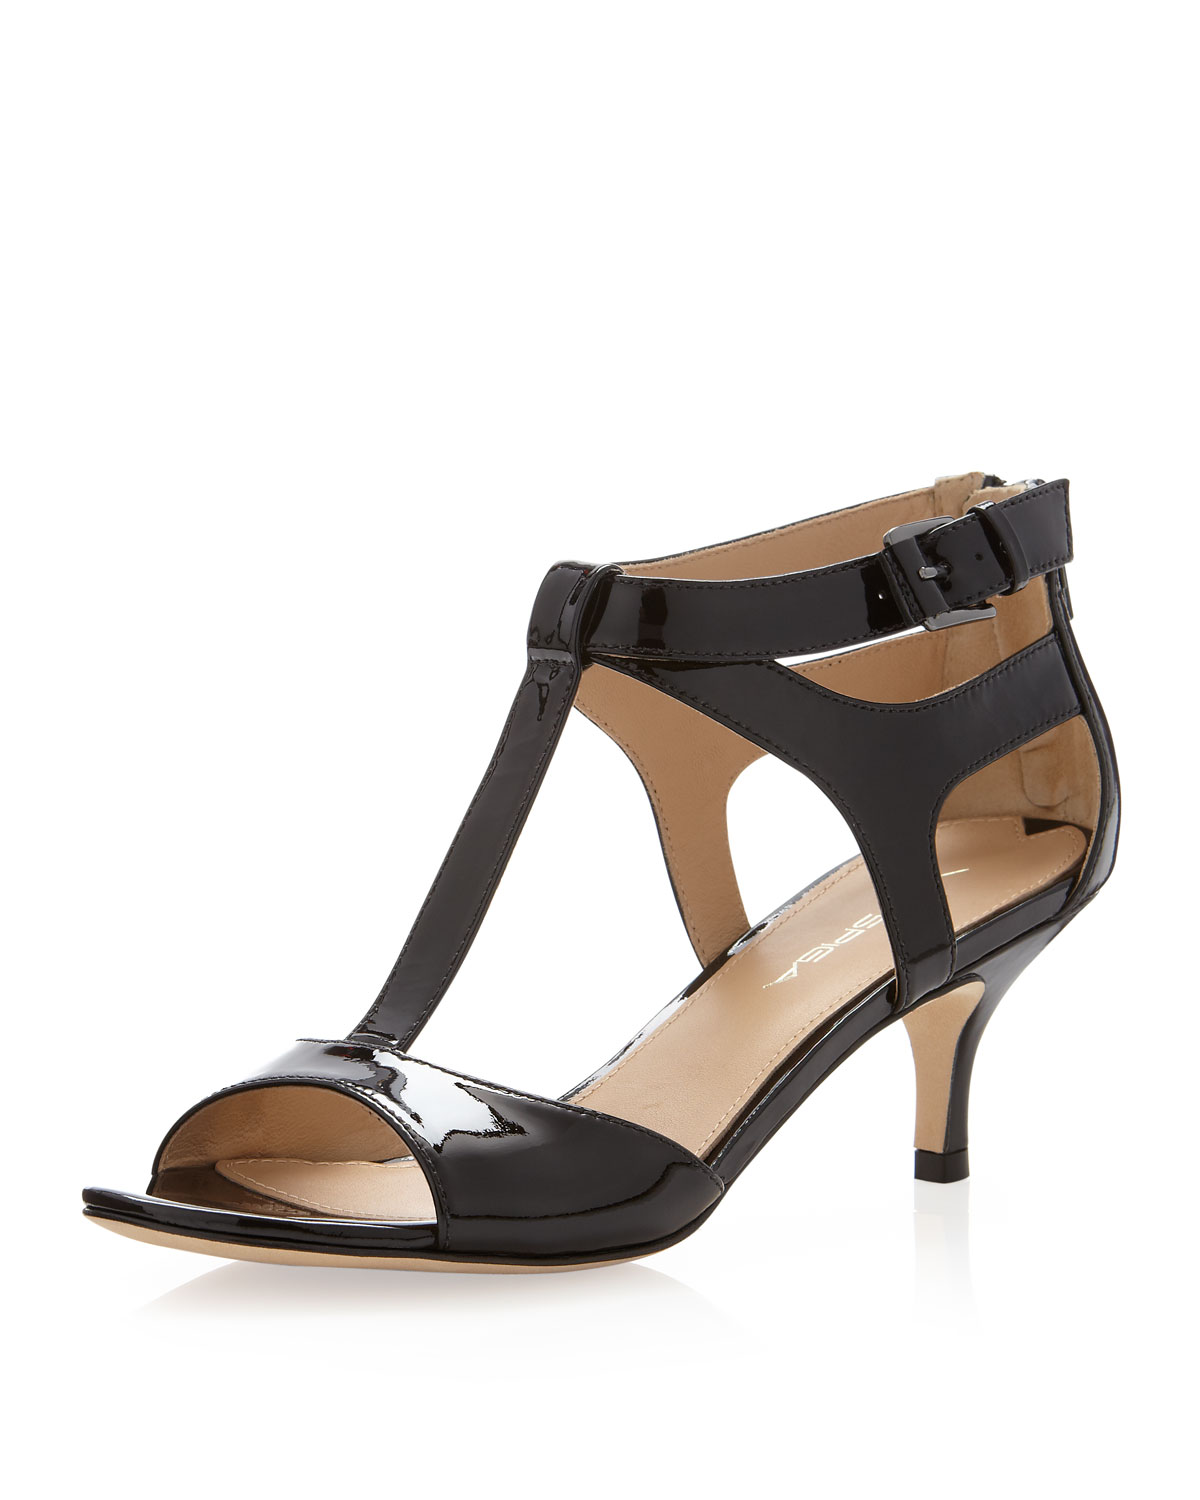 sandals Sandals Lost Ink BLAKELY RUCHED KITTEN HEEL - Sandals - black.